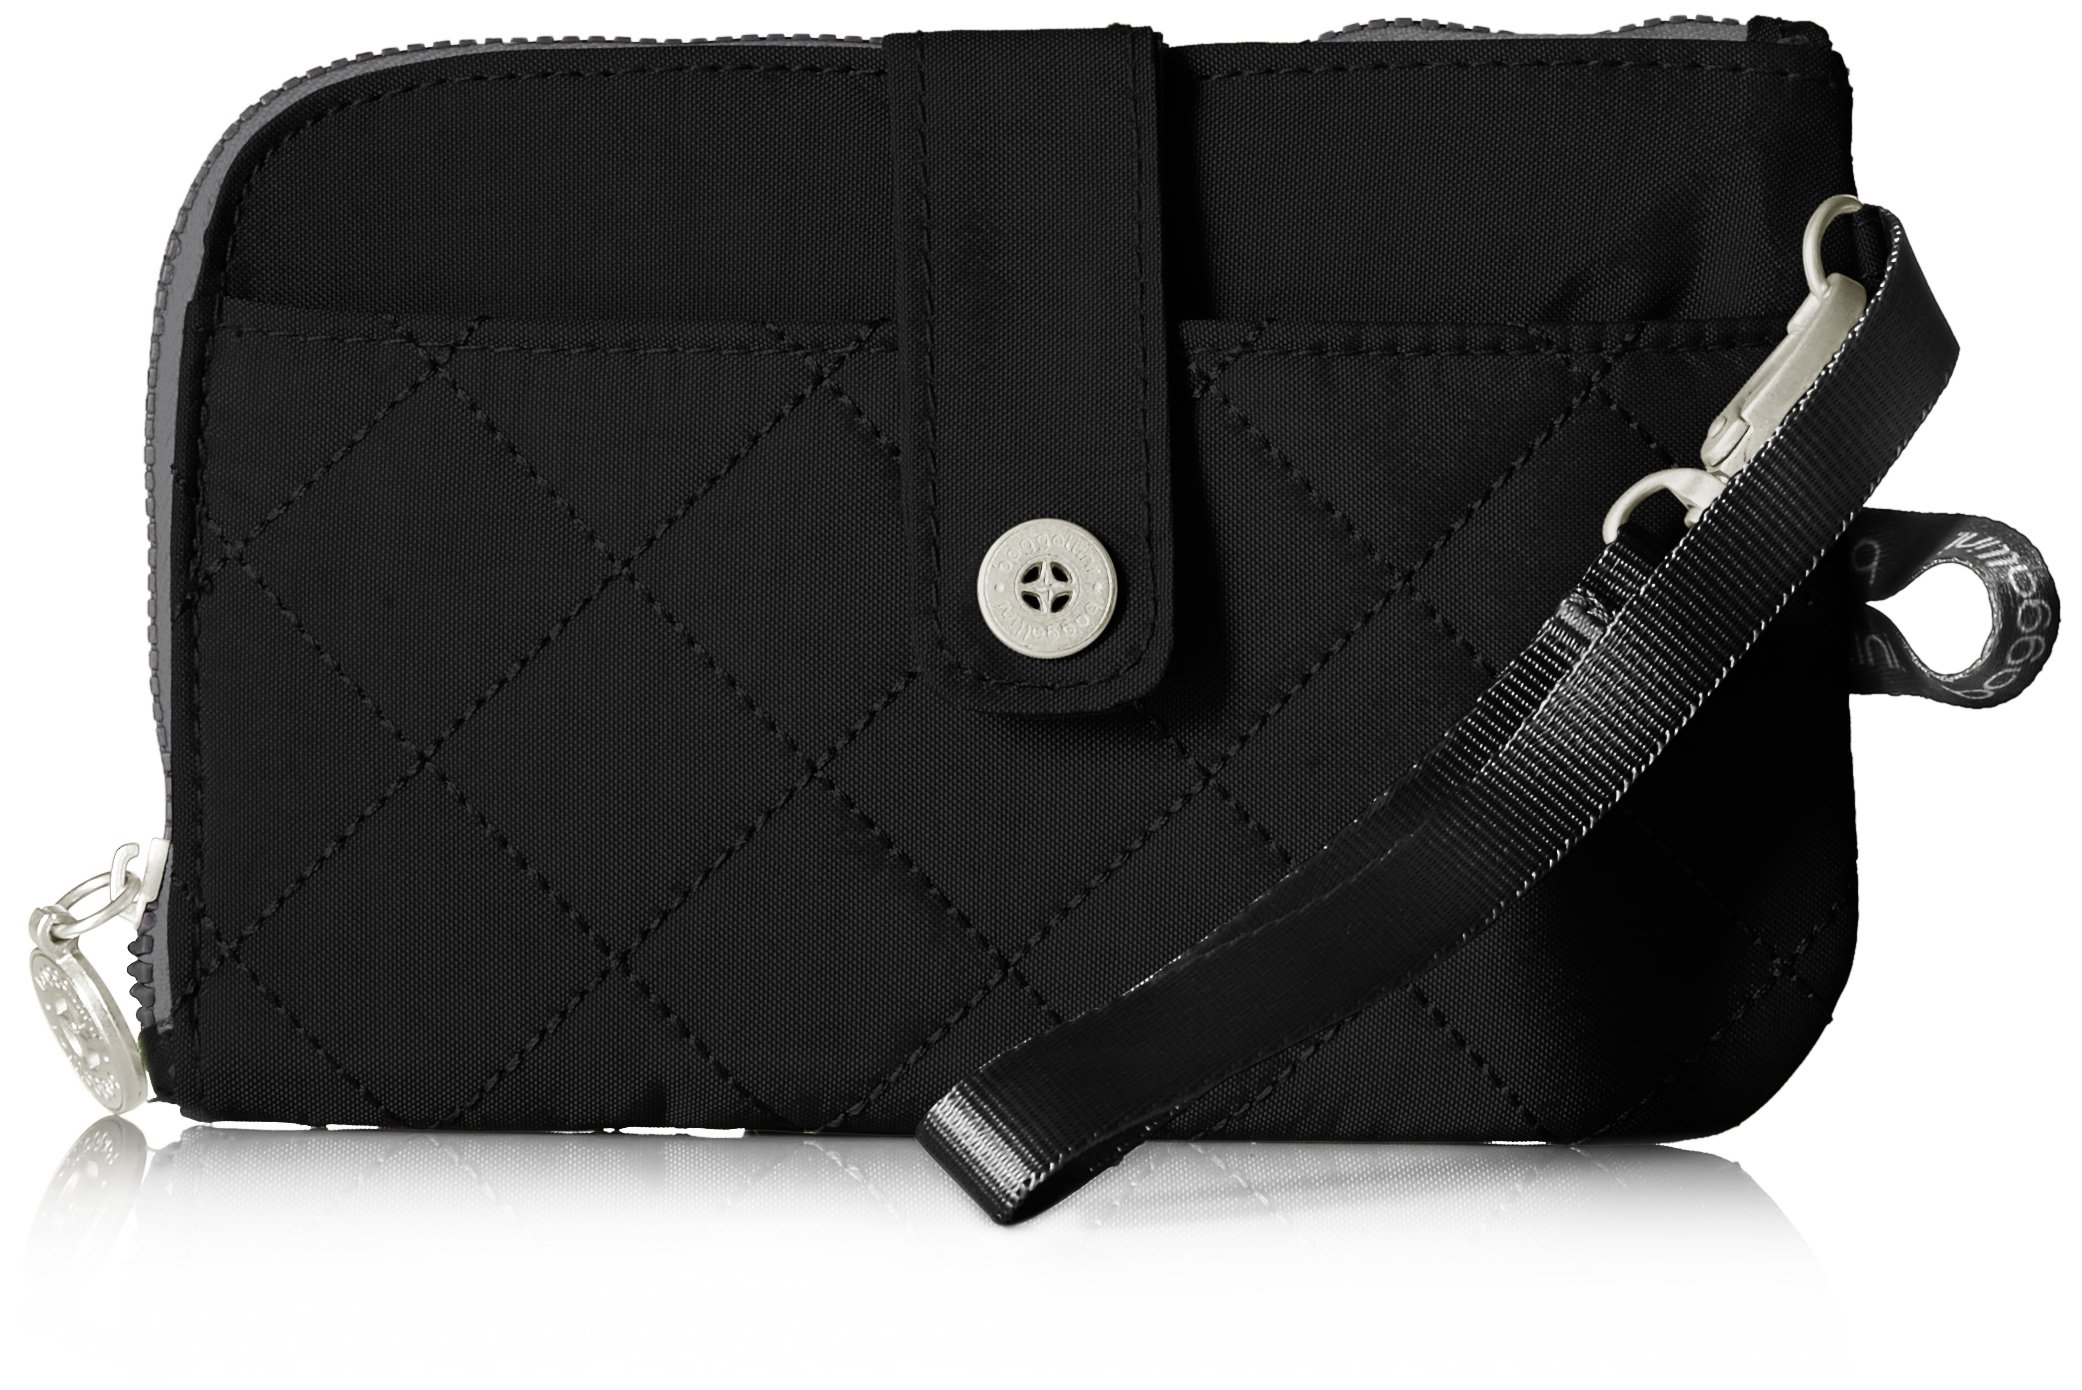 Baggallini Women's Rfid Passport and Phone Wristlet, Black/Charcoal, One Size